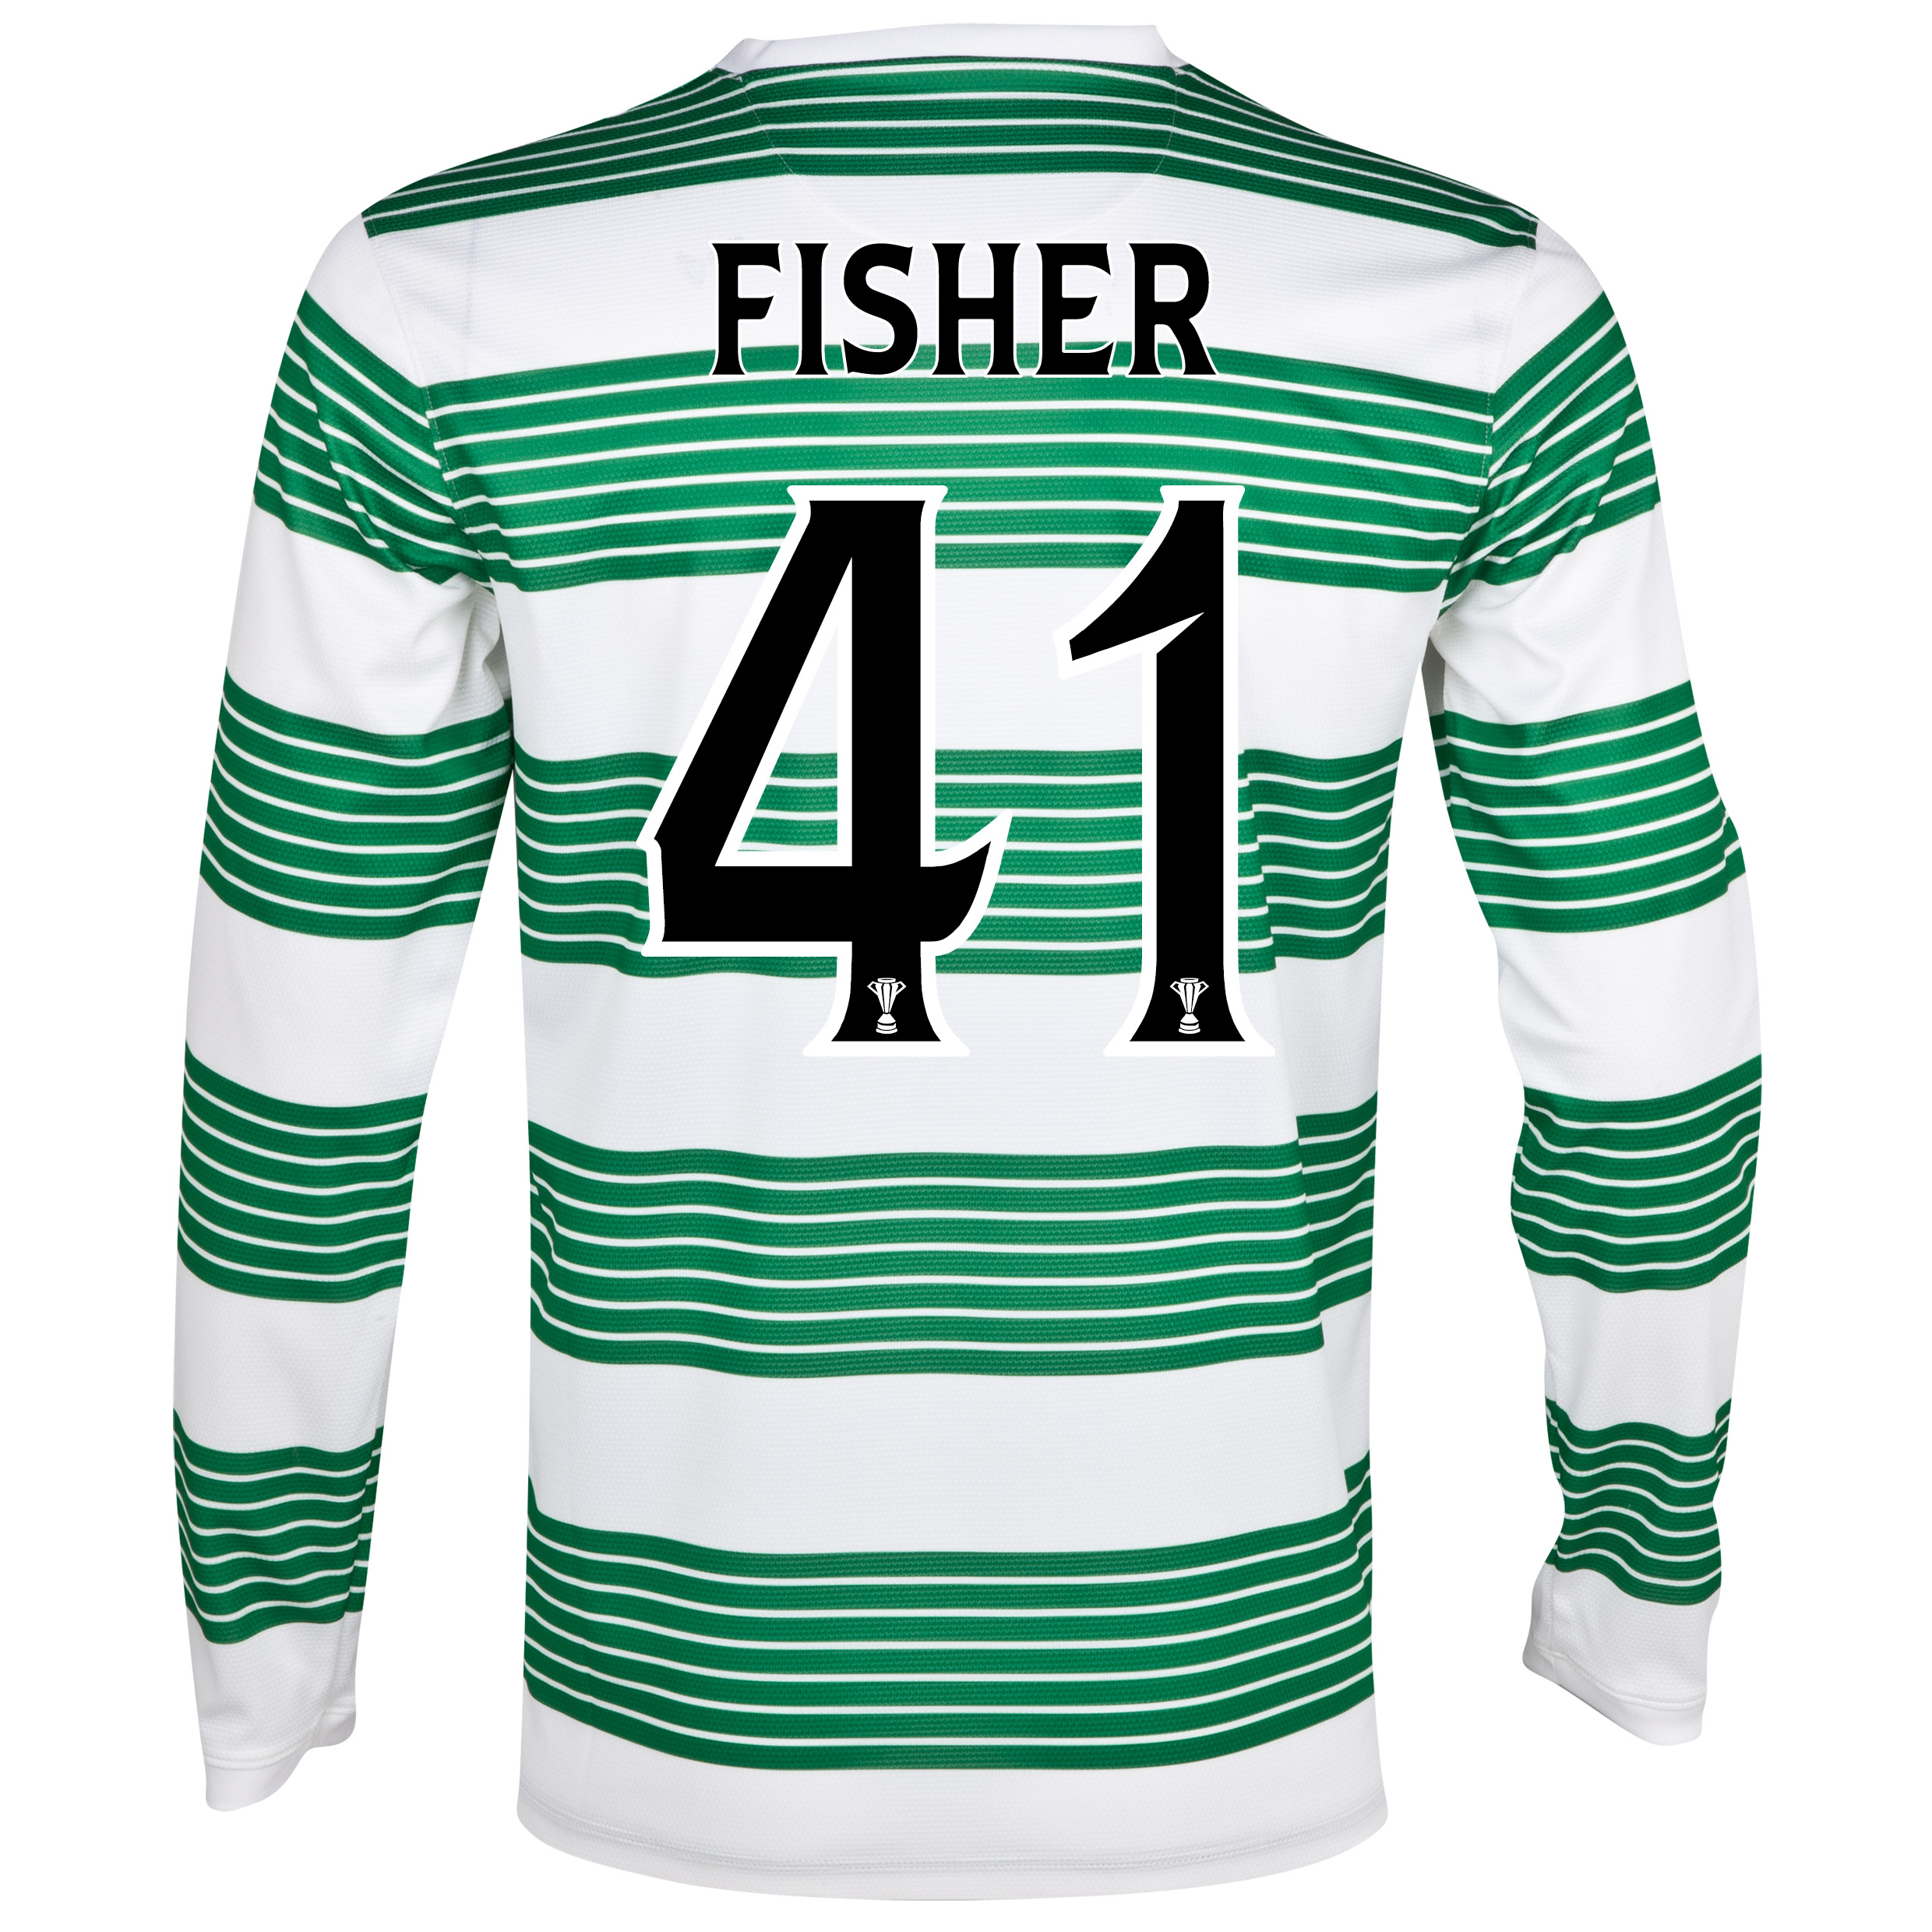 Celtic Home Shirt 2013/15 - L/S- With Sponsor with Fisher 41 printing